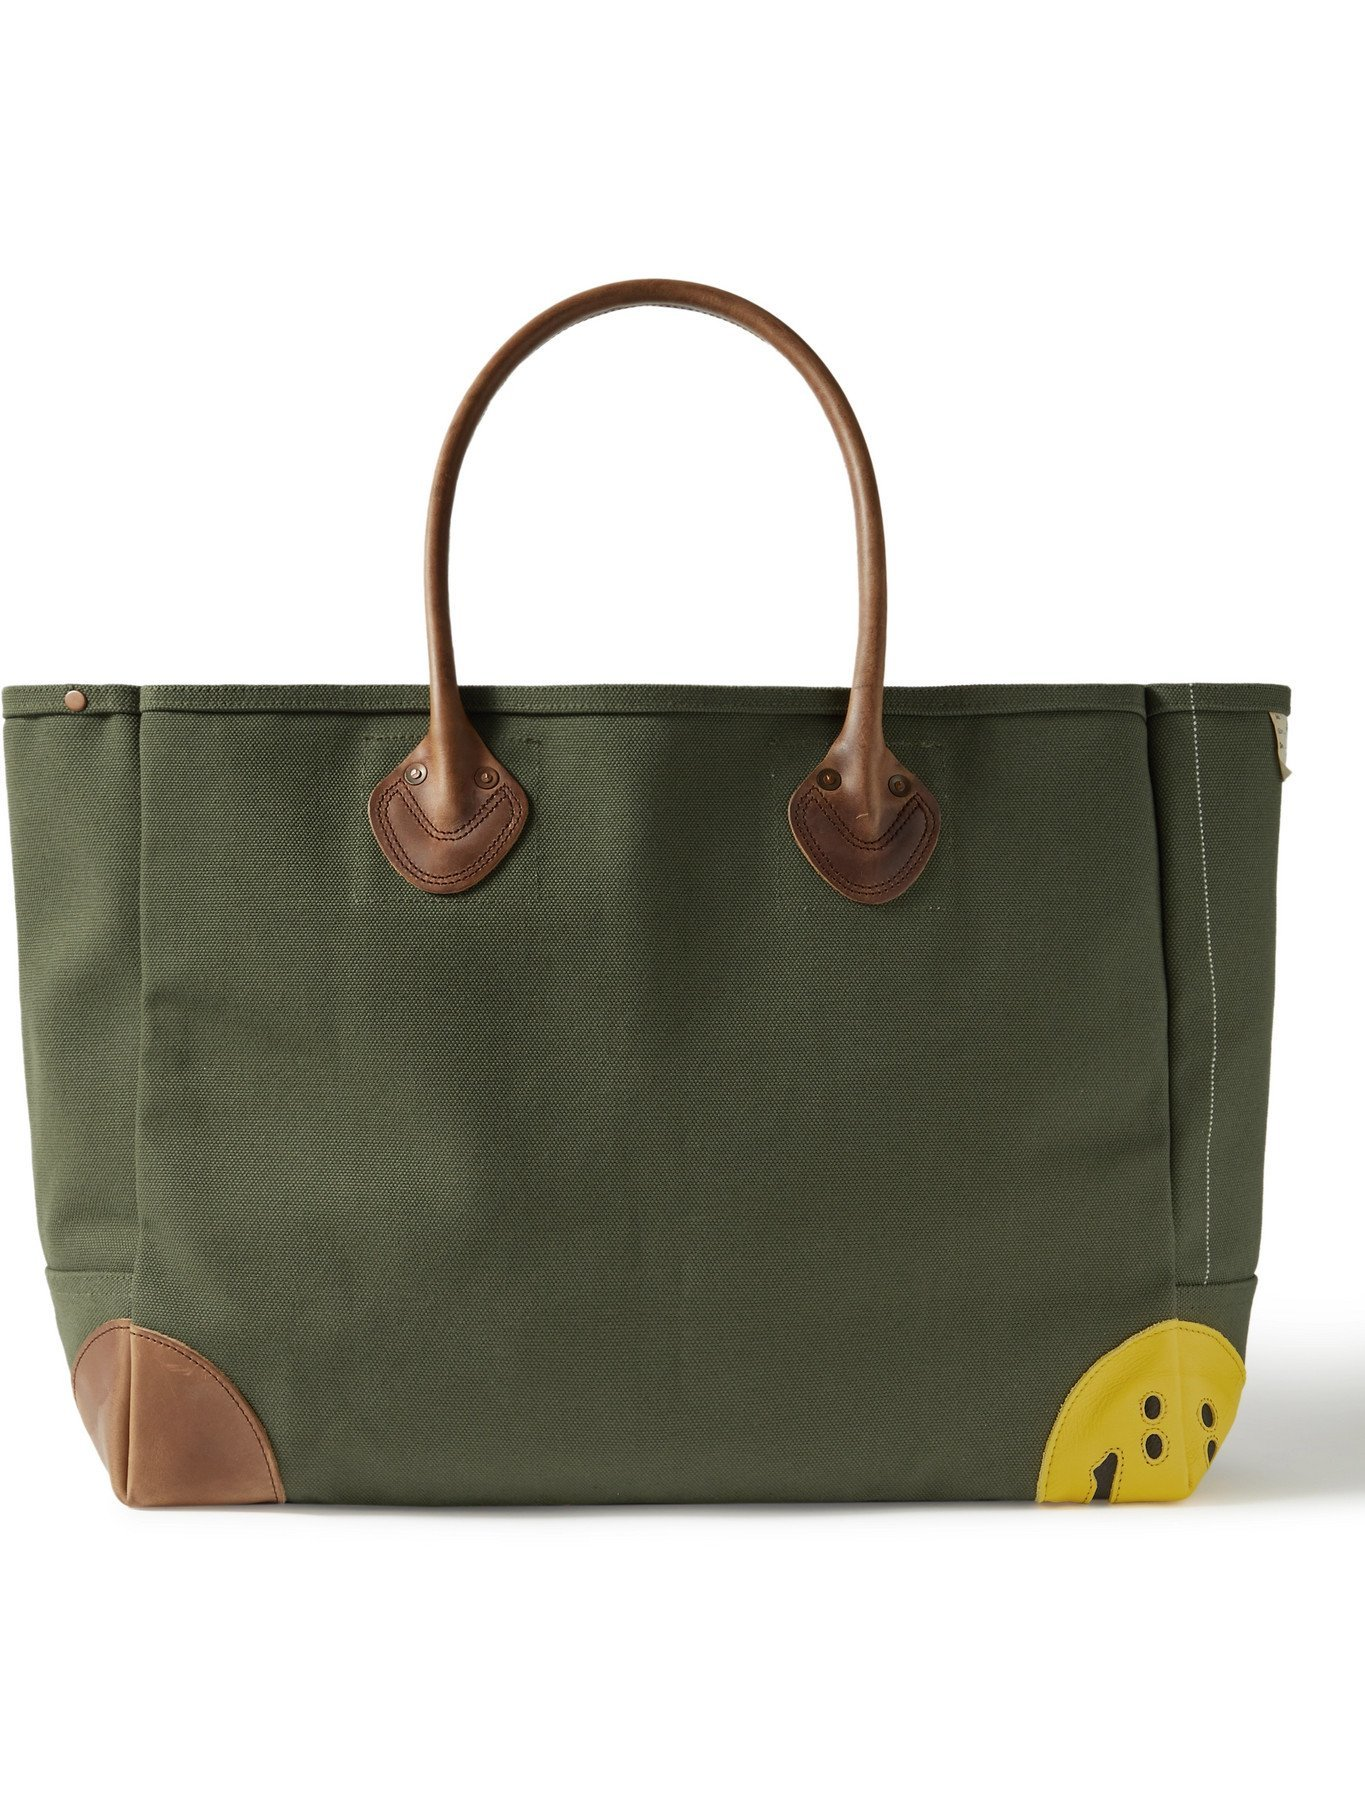 KAPITAL - Smiley Leather-Trimmed Canvas Tote Bag